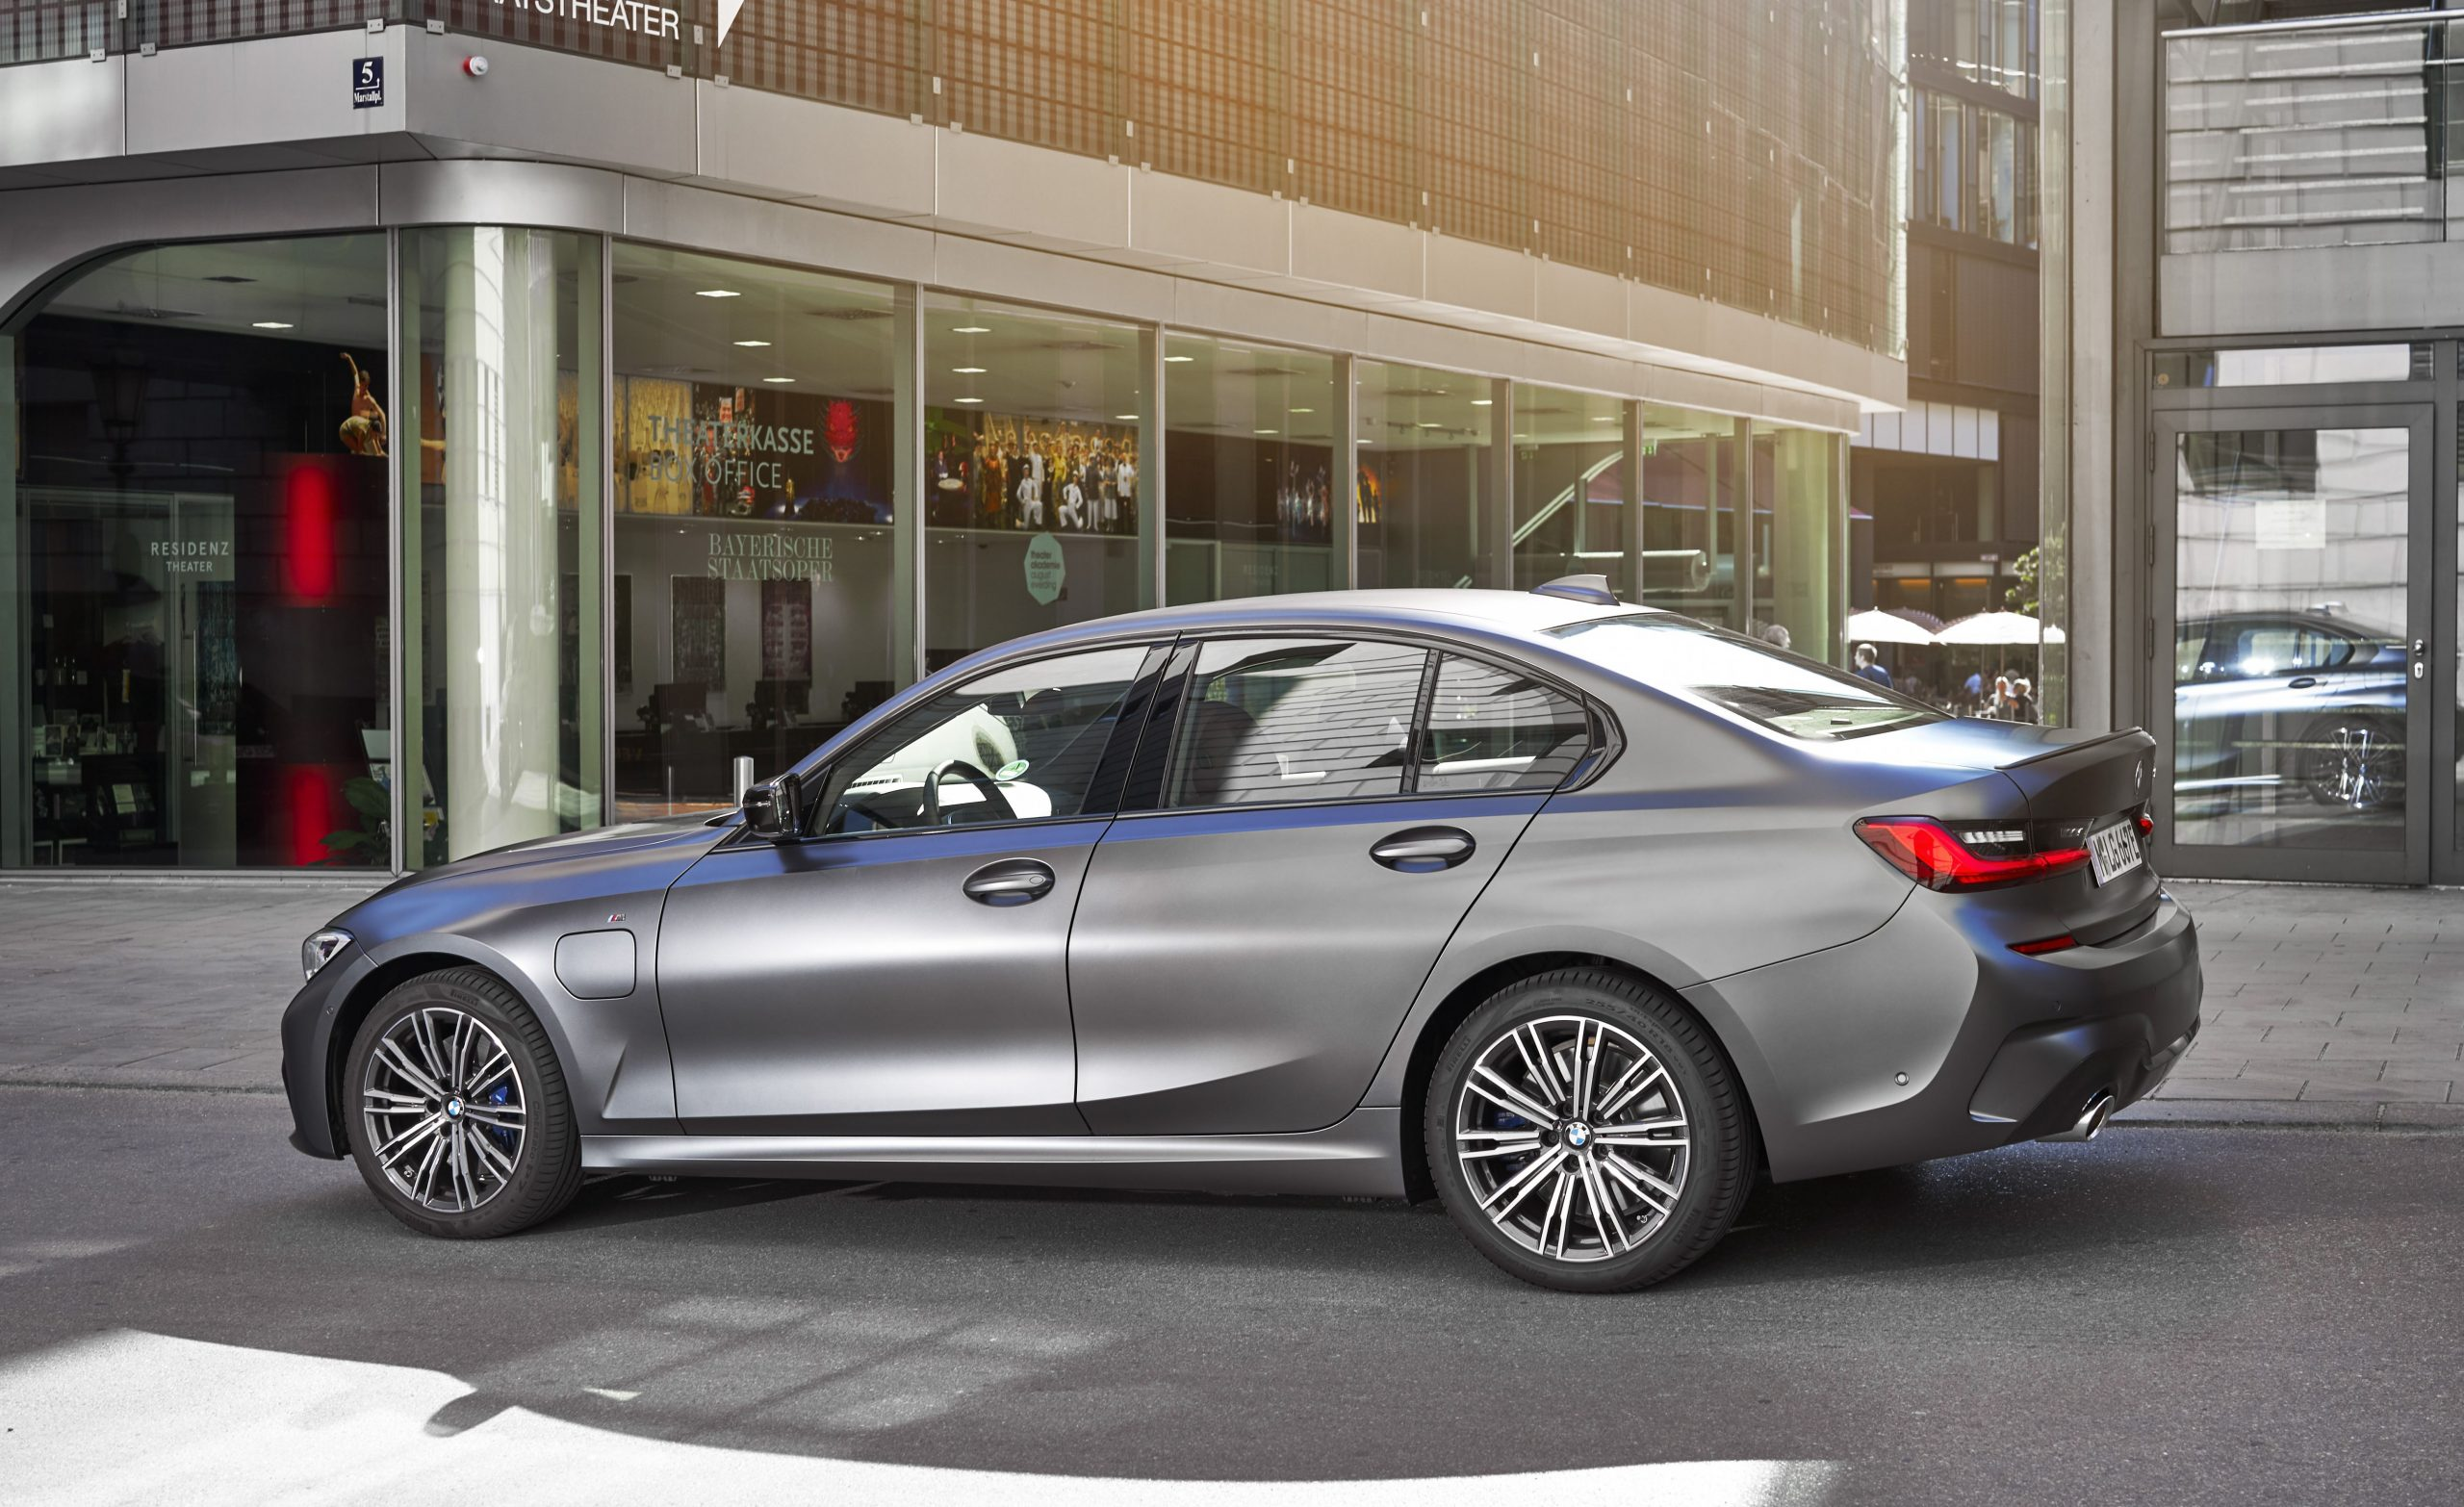 5 BMW 5-Series Review, Pricing, and Specs - 2019 Vs 2021 BMW 3 Series